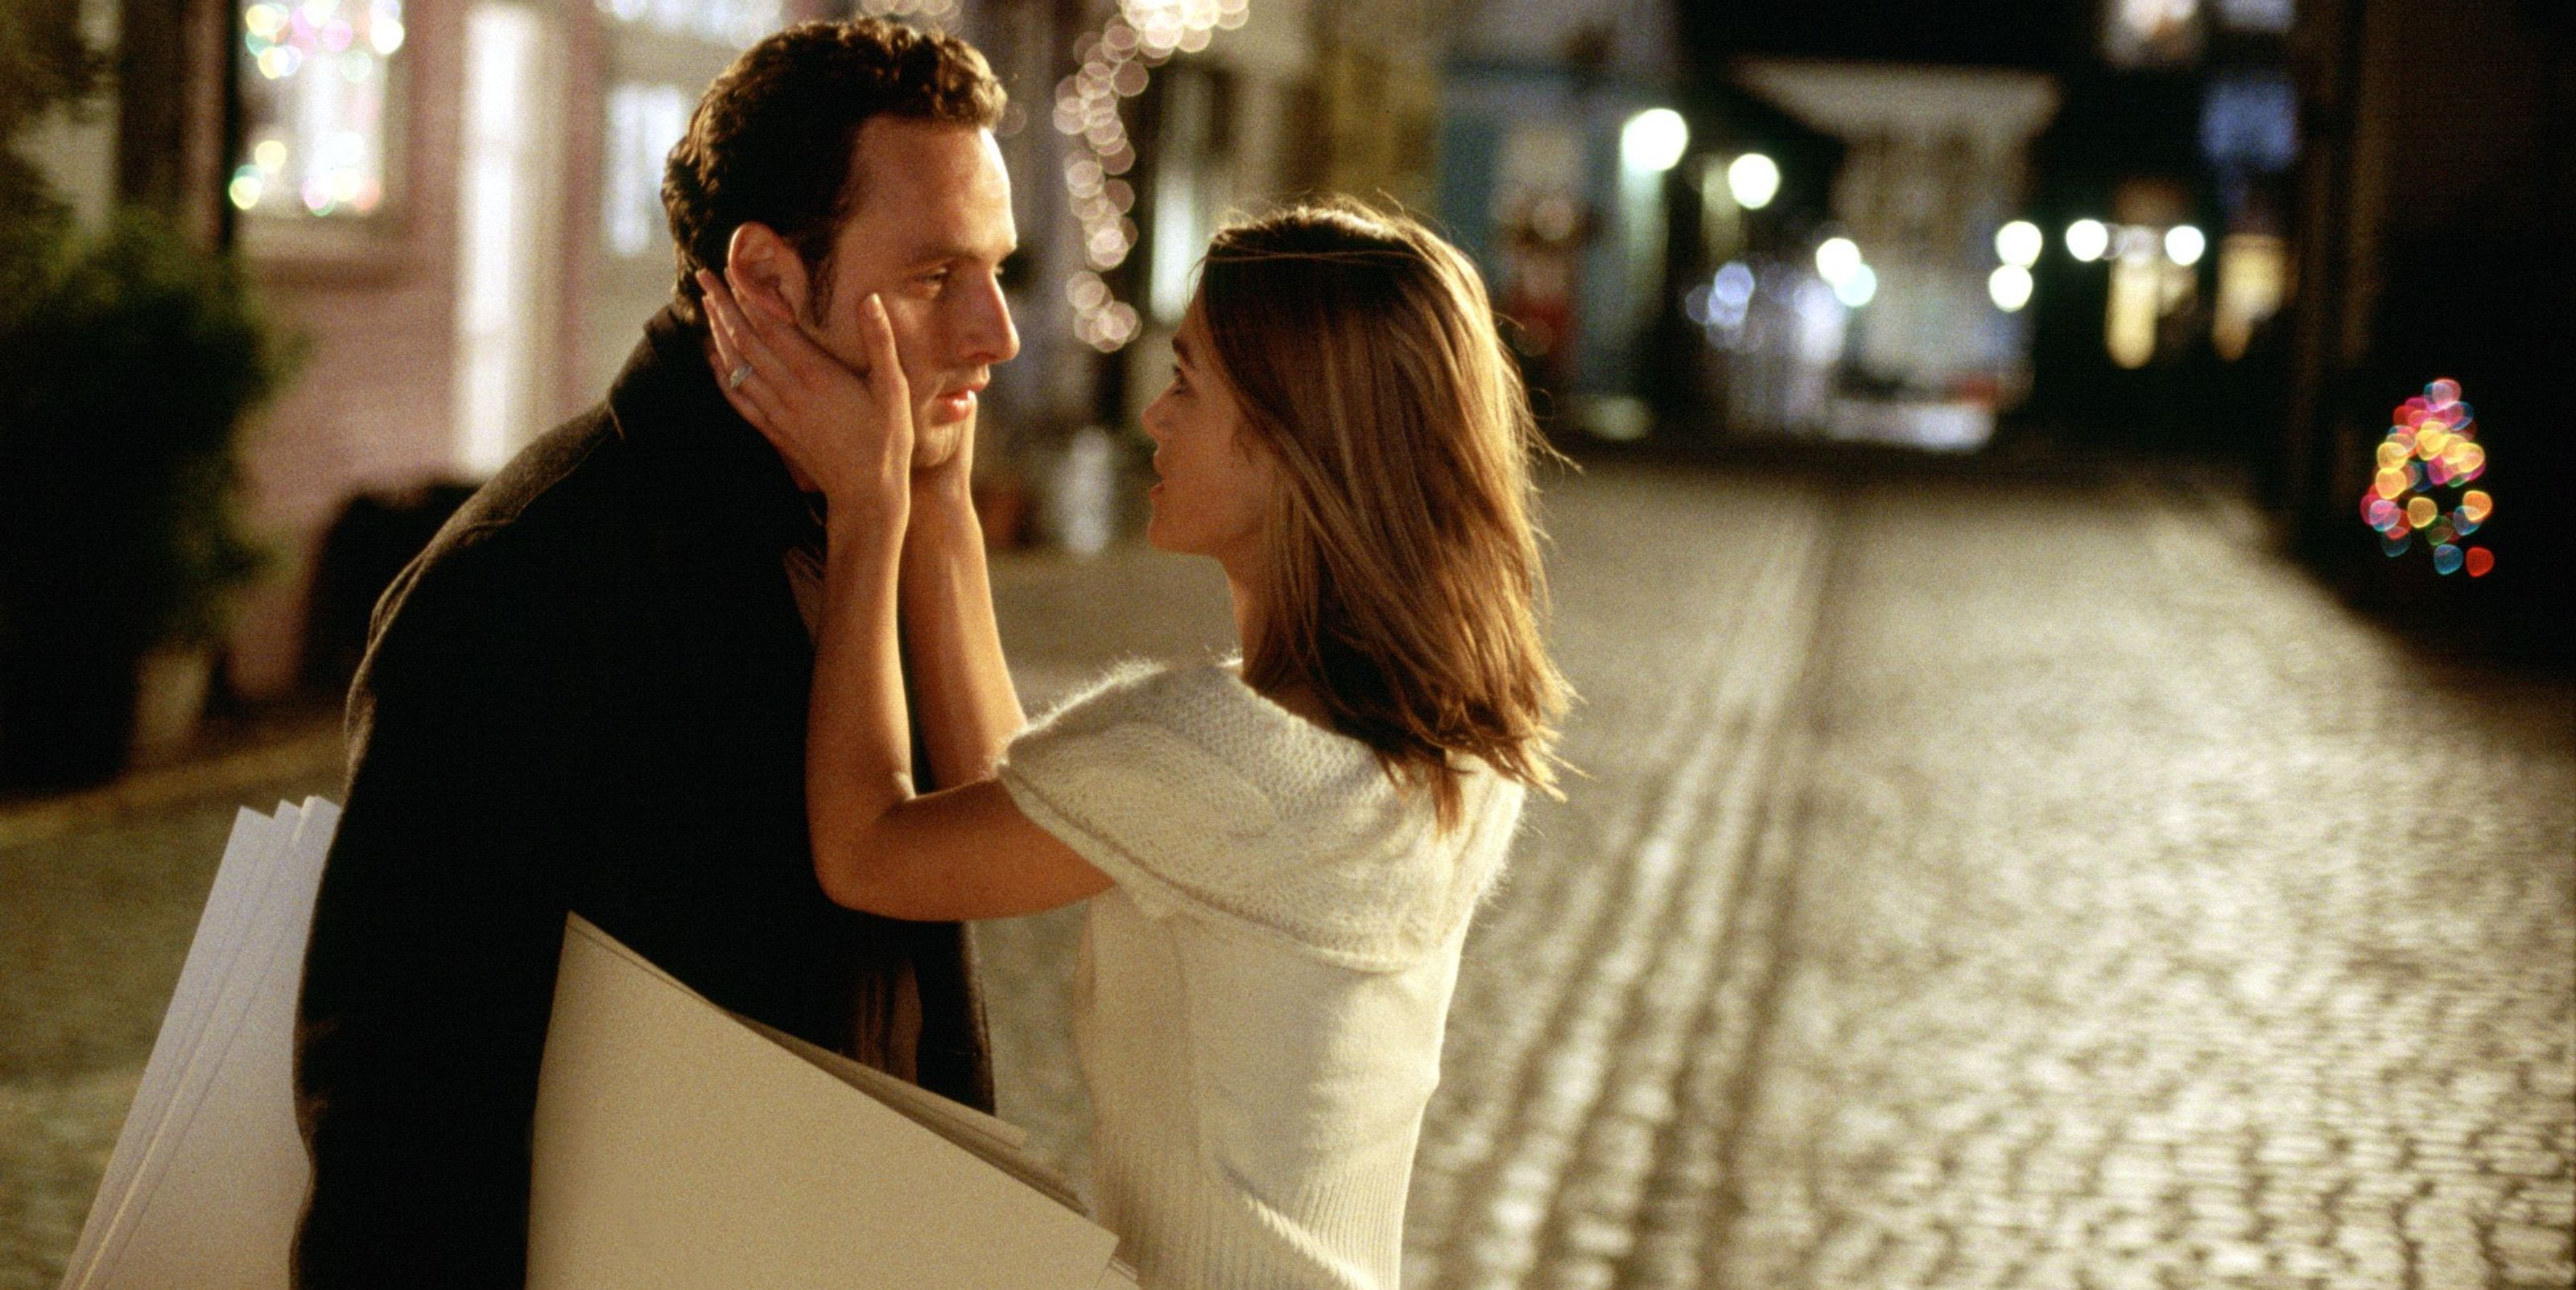 15 Romantic Movies on Netflix That Will Make You Swoon